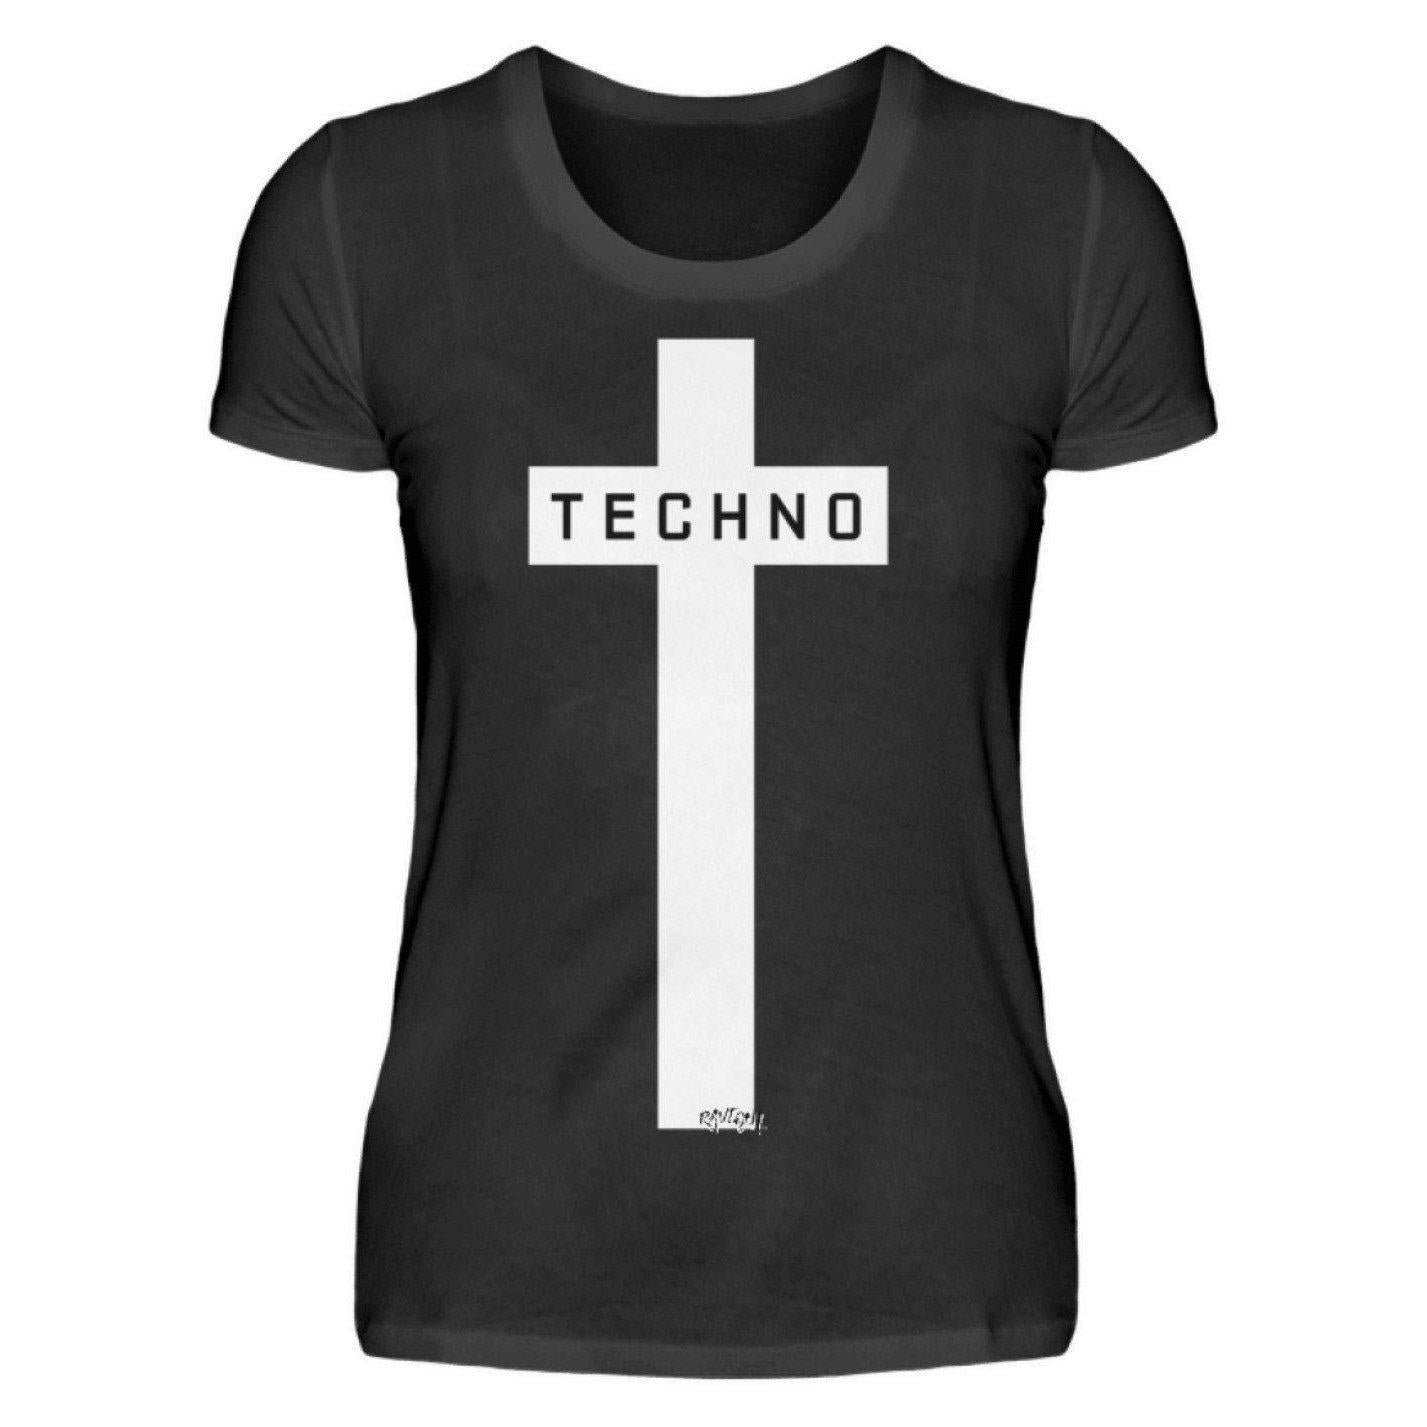 Techno Cross - Rave On!® - Ladies Shirt Ladies Basic T-Shirt Black / S - Rave On!® the club & techno scene shop for cool young fashion streetwear style & fashion outfits + sexy festival 420 stuff